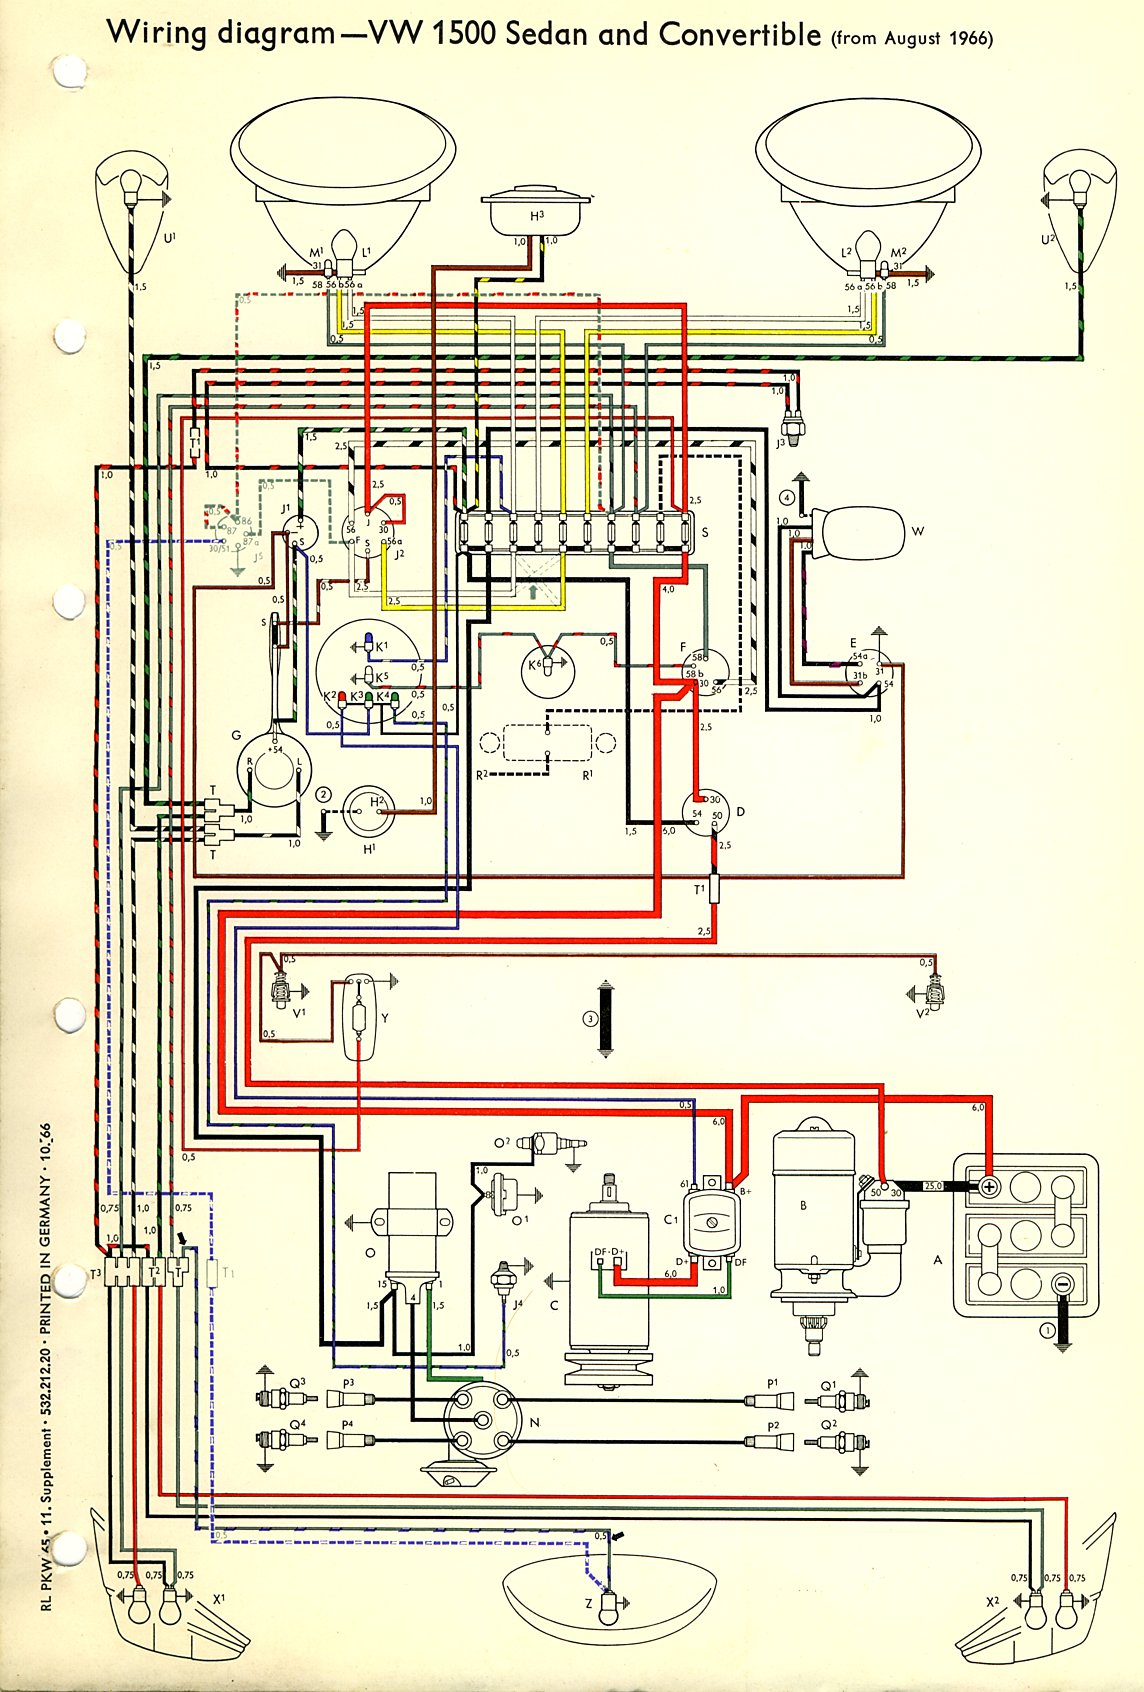 1974 Vw Super Beetle Wiring Diagram - Wiring Diagram Write  Dodge Challenger Wiring Diagram on dodge 3500 wiring diagram, dodge dakota wiring diagram, dodge challenger fuel tank, dodge challenger amp location, dodge omni wiring diagram, dodge m37 wiring diagram, dodge viper wiring diagram, dodge challenger rear bumper removal, dodge challenger engine diagram, dodge challenger speaker, dodge challenger air cleaner, dodge d150 wiring diagram, dodge d100 wiring diagram, chrysler dodge wiring diagram, dodge challenger outline drawing, dodge durango wiring diagram, dodge magnum wiring diagram, 1955 dodge wiring diagram, dodge pickup wiring diagram, dodge w150 wiring diagram,